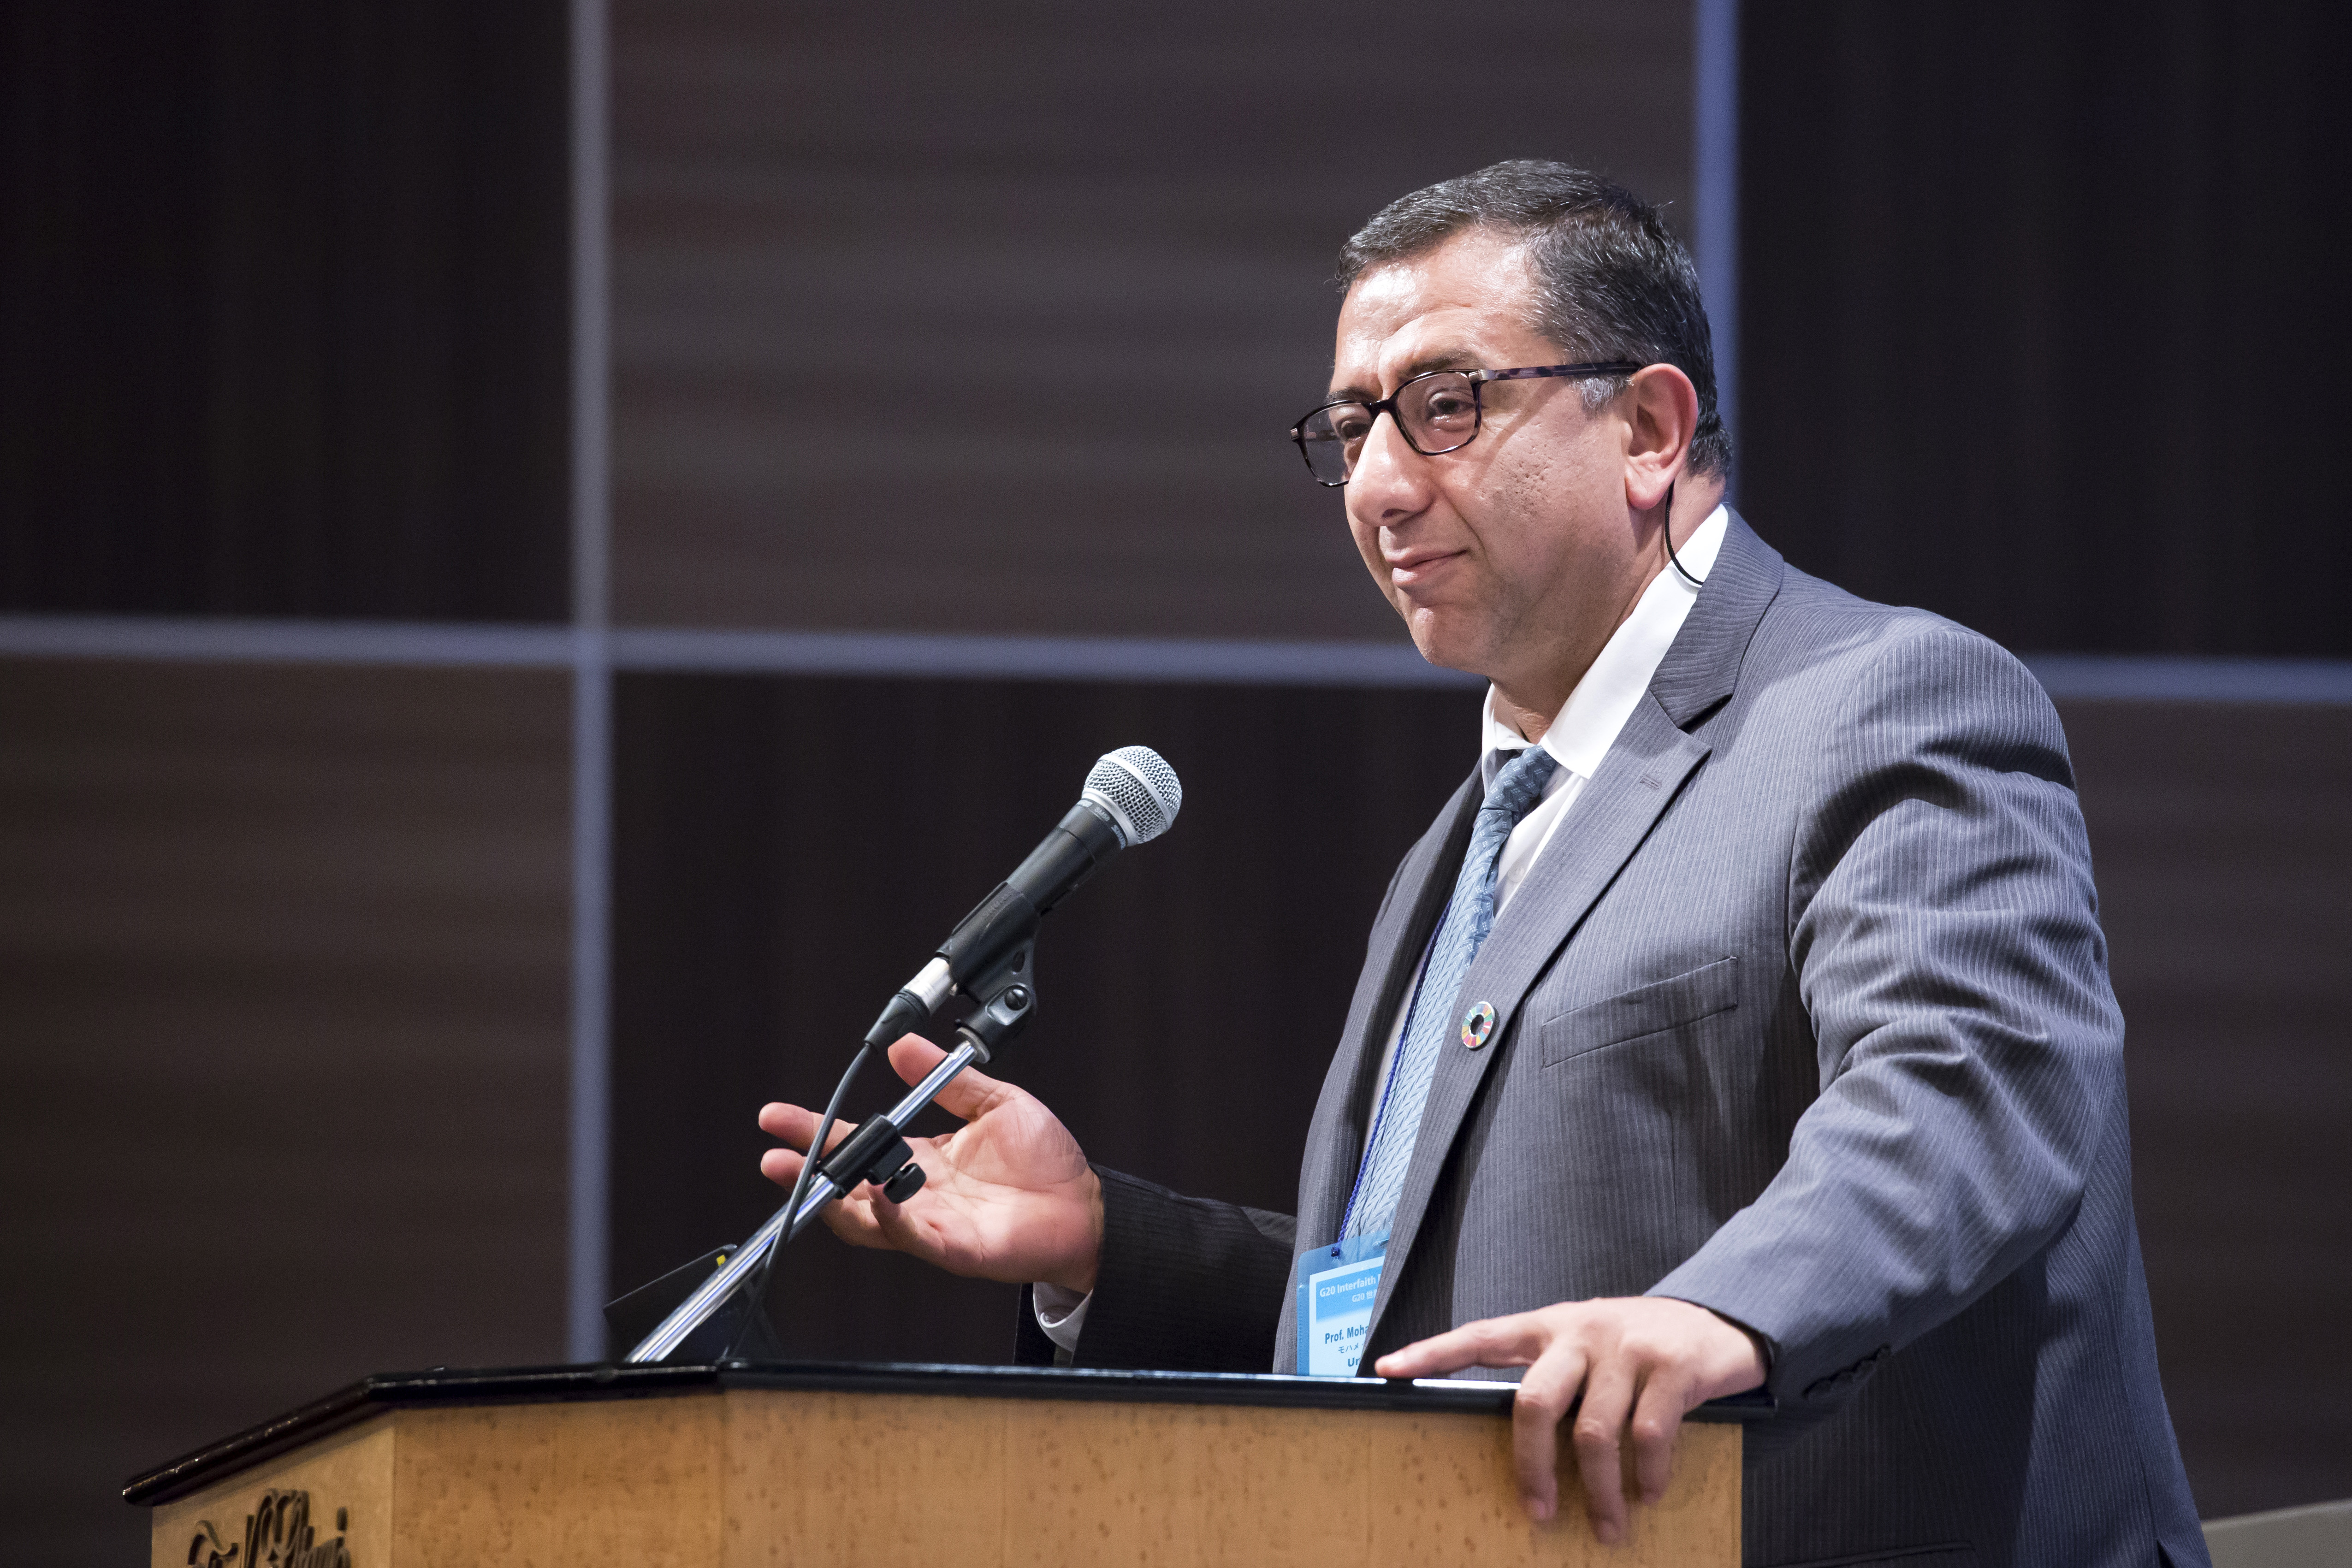 Mohammed Abu-Nimer speaks during the G20 Interfaith Forum in Chiba, Japan, on Saturday, June 8, 2019.